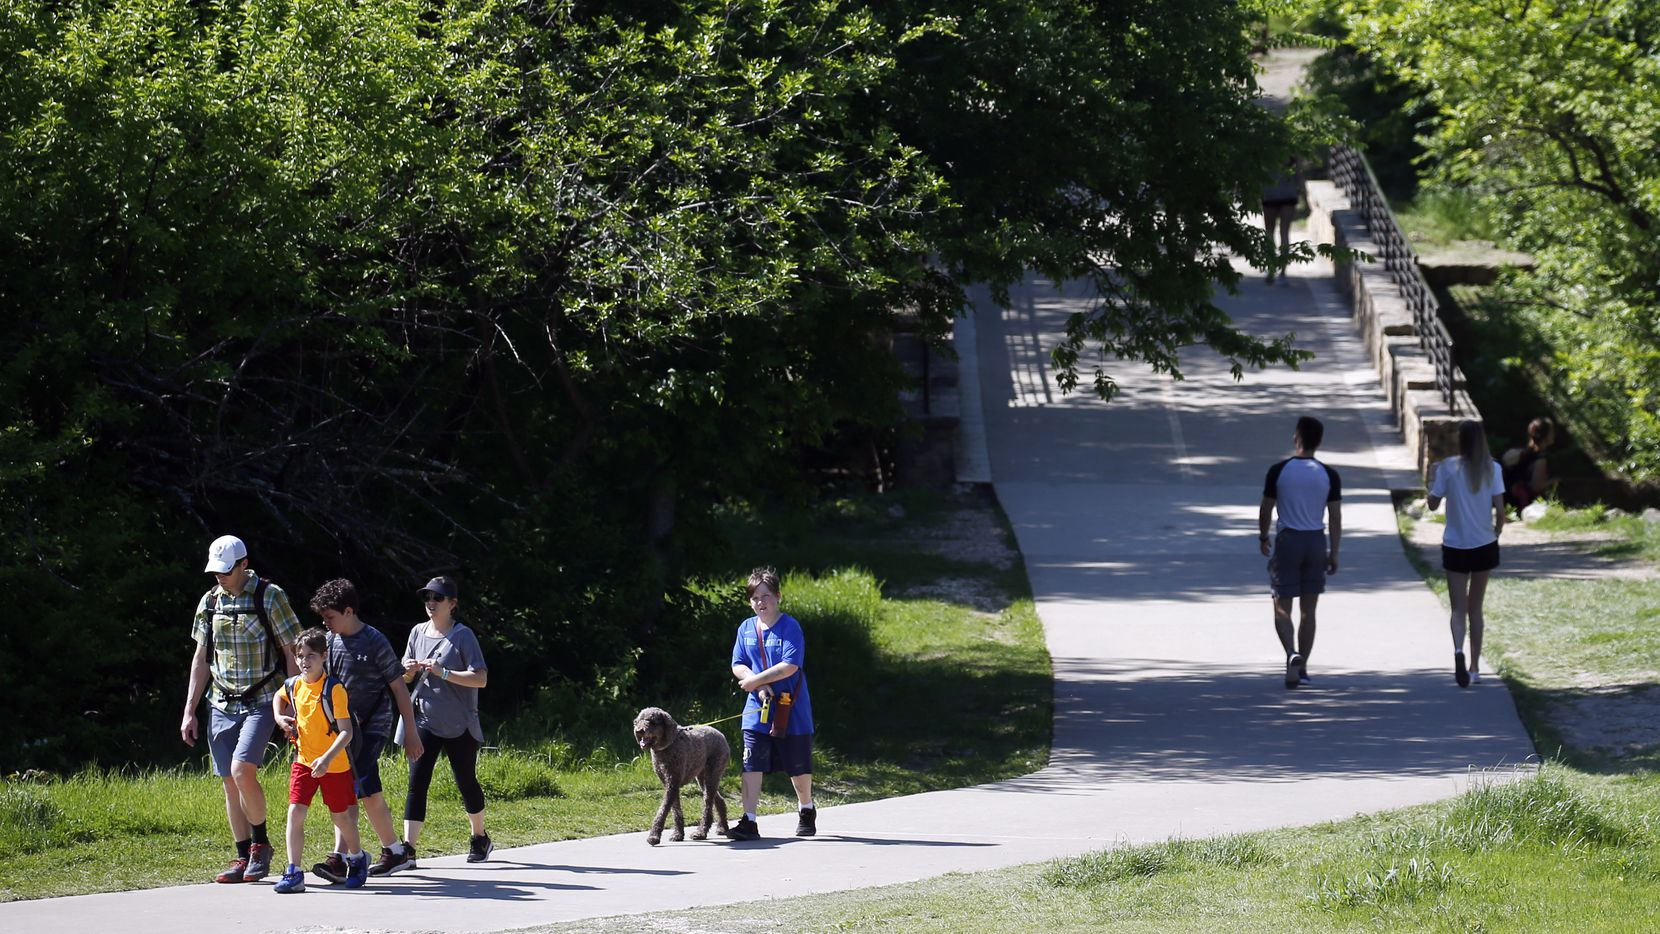 People make their way along the trail at Arbor Hills Nature Preserve, a 200 acre park in Plano.